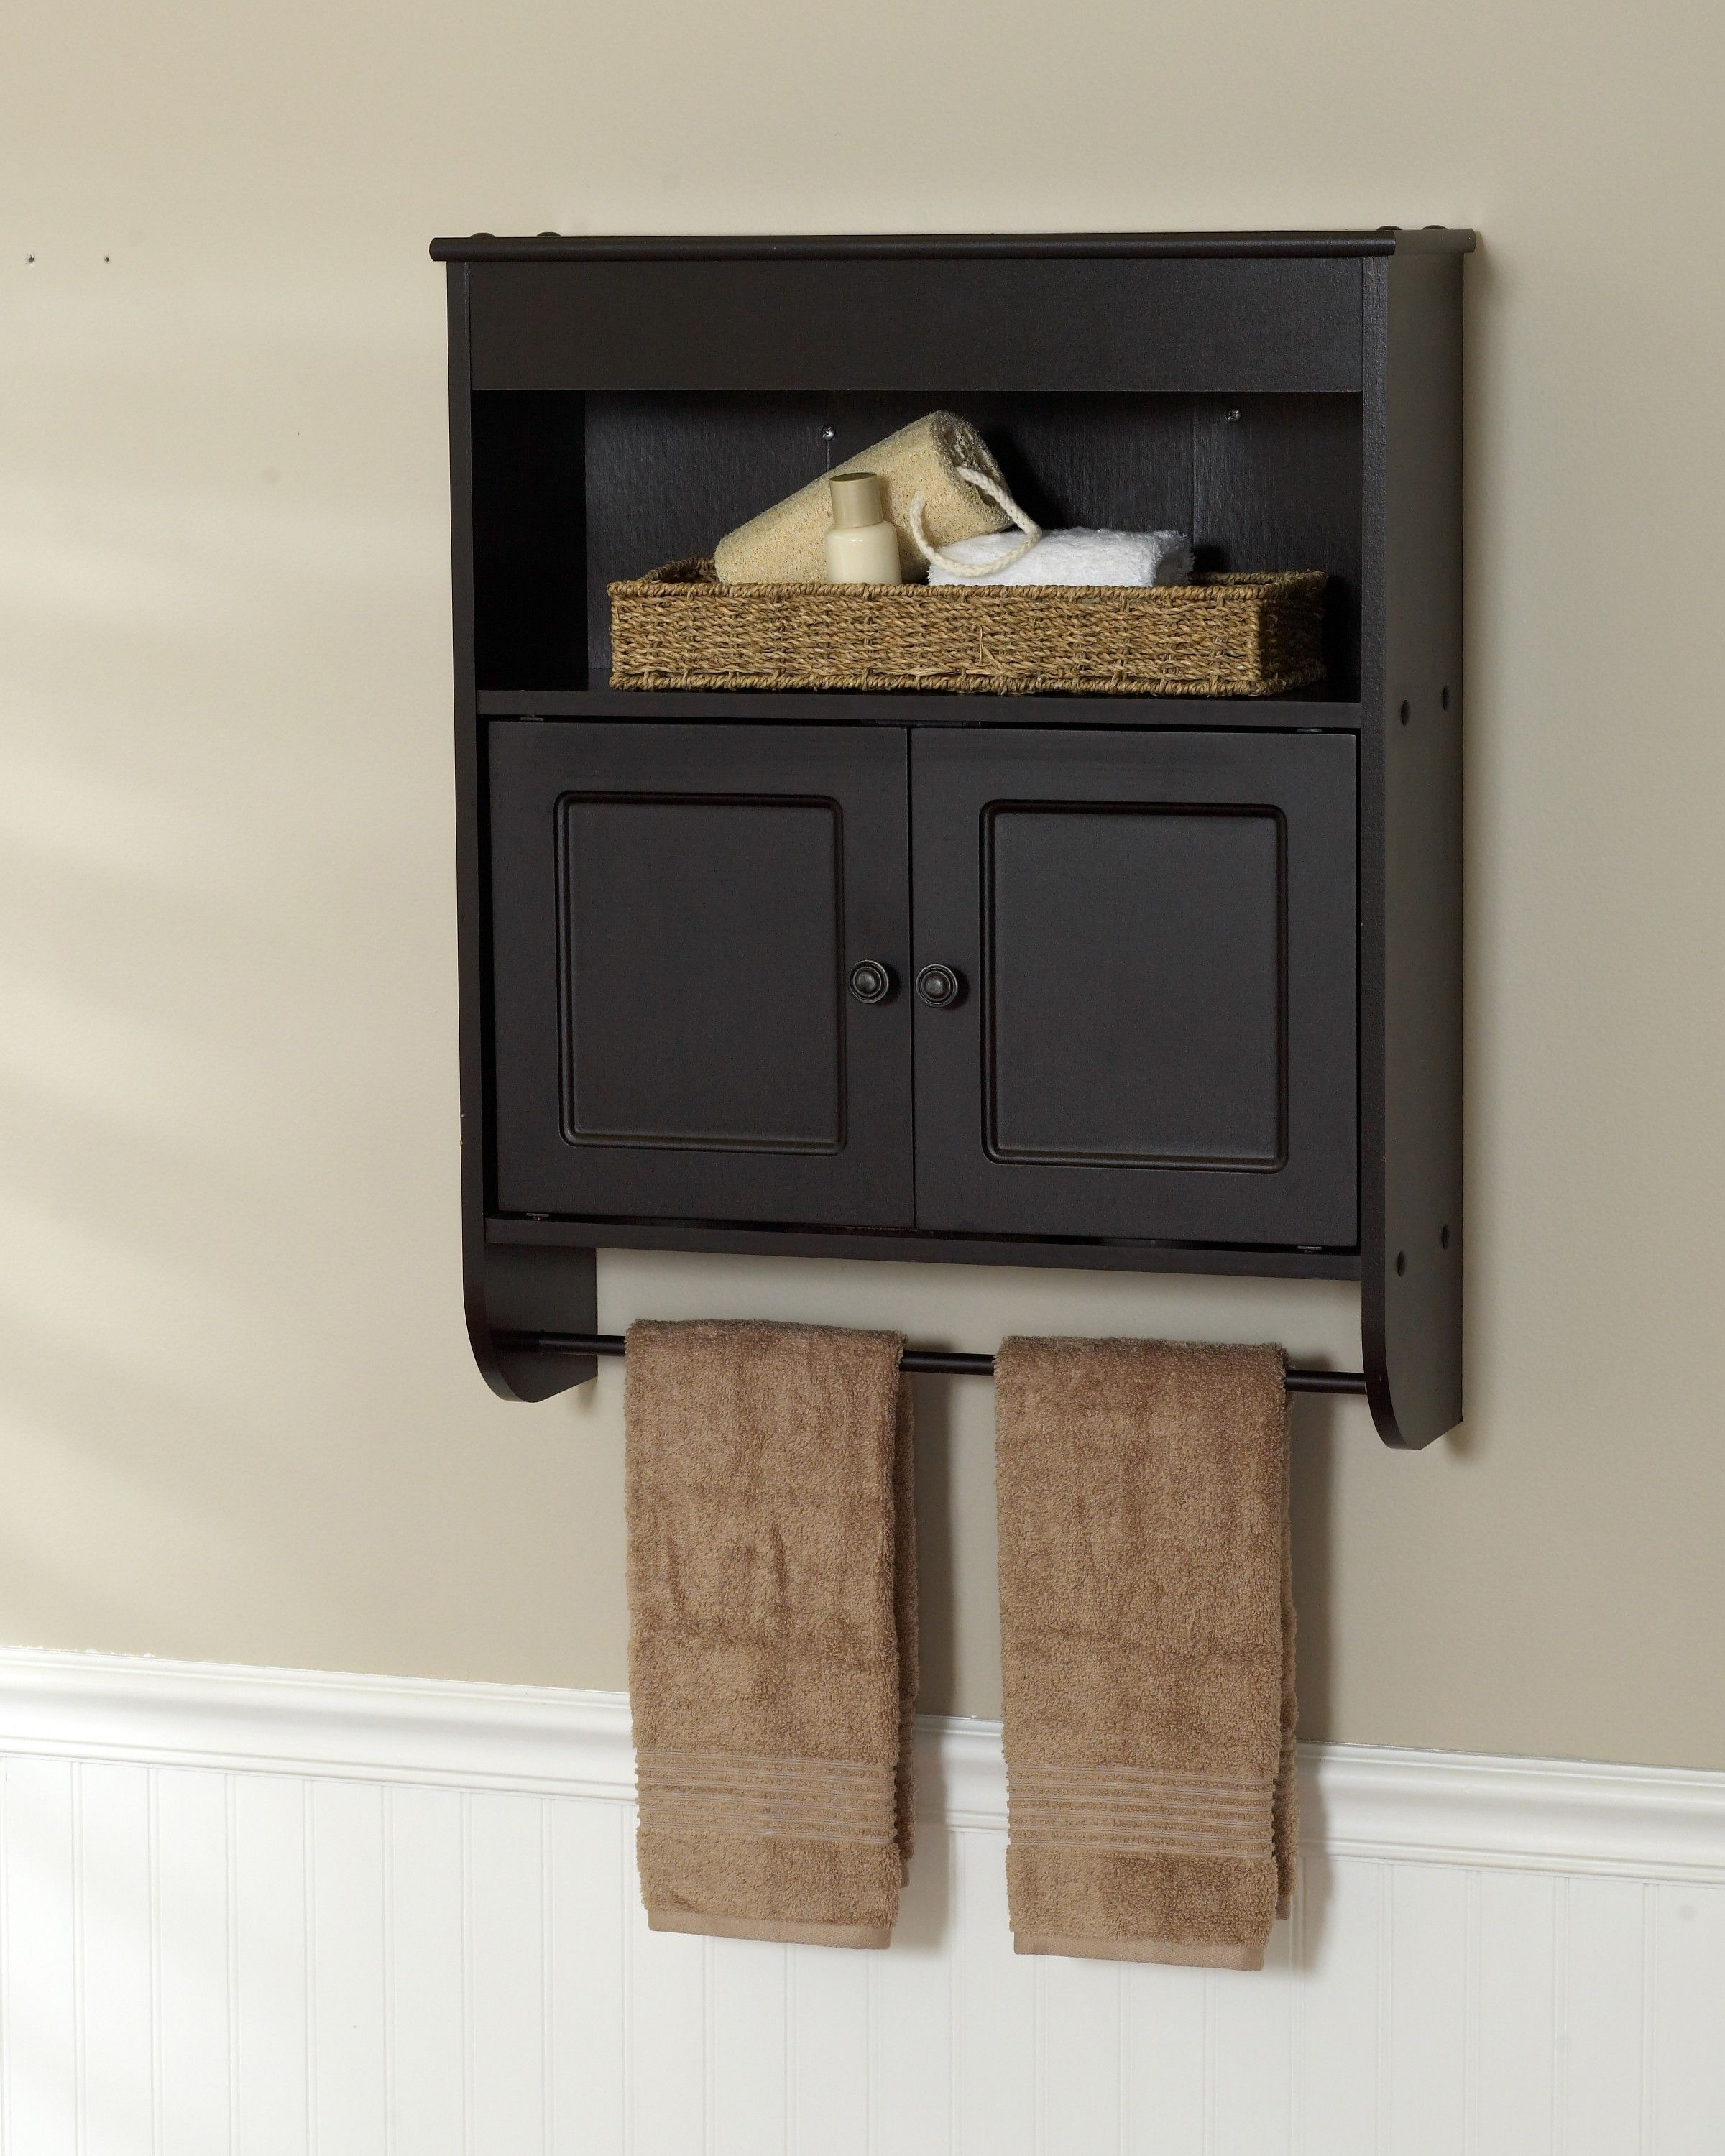 Espresso Cabinet With Towel Bar Zenith Home Corp Zpc